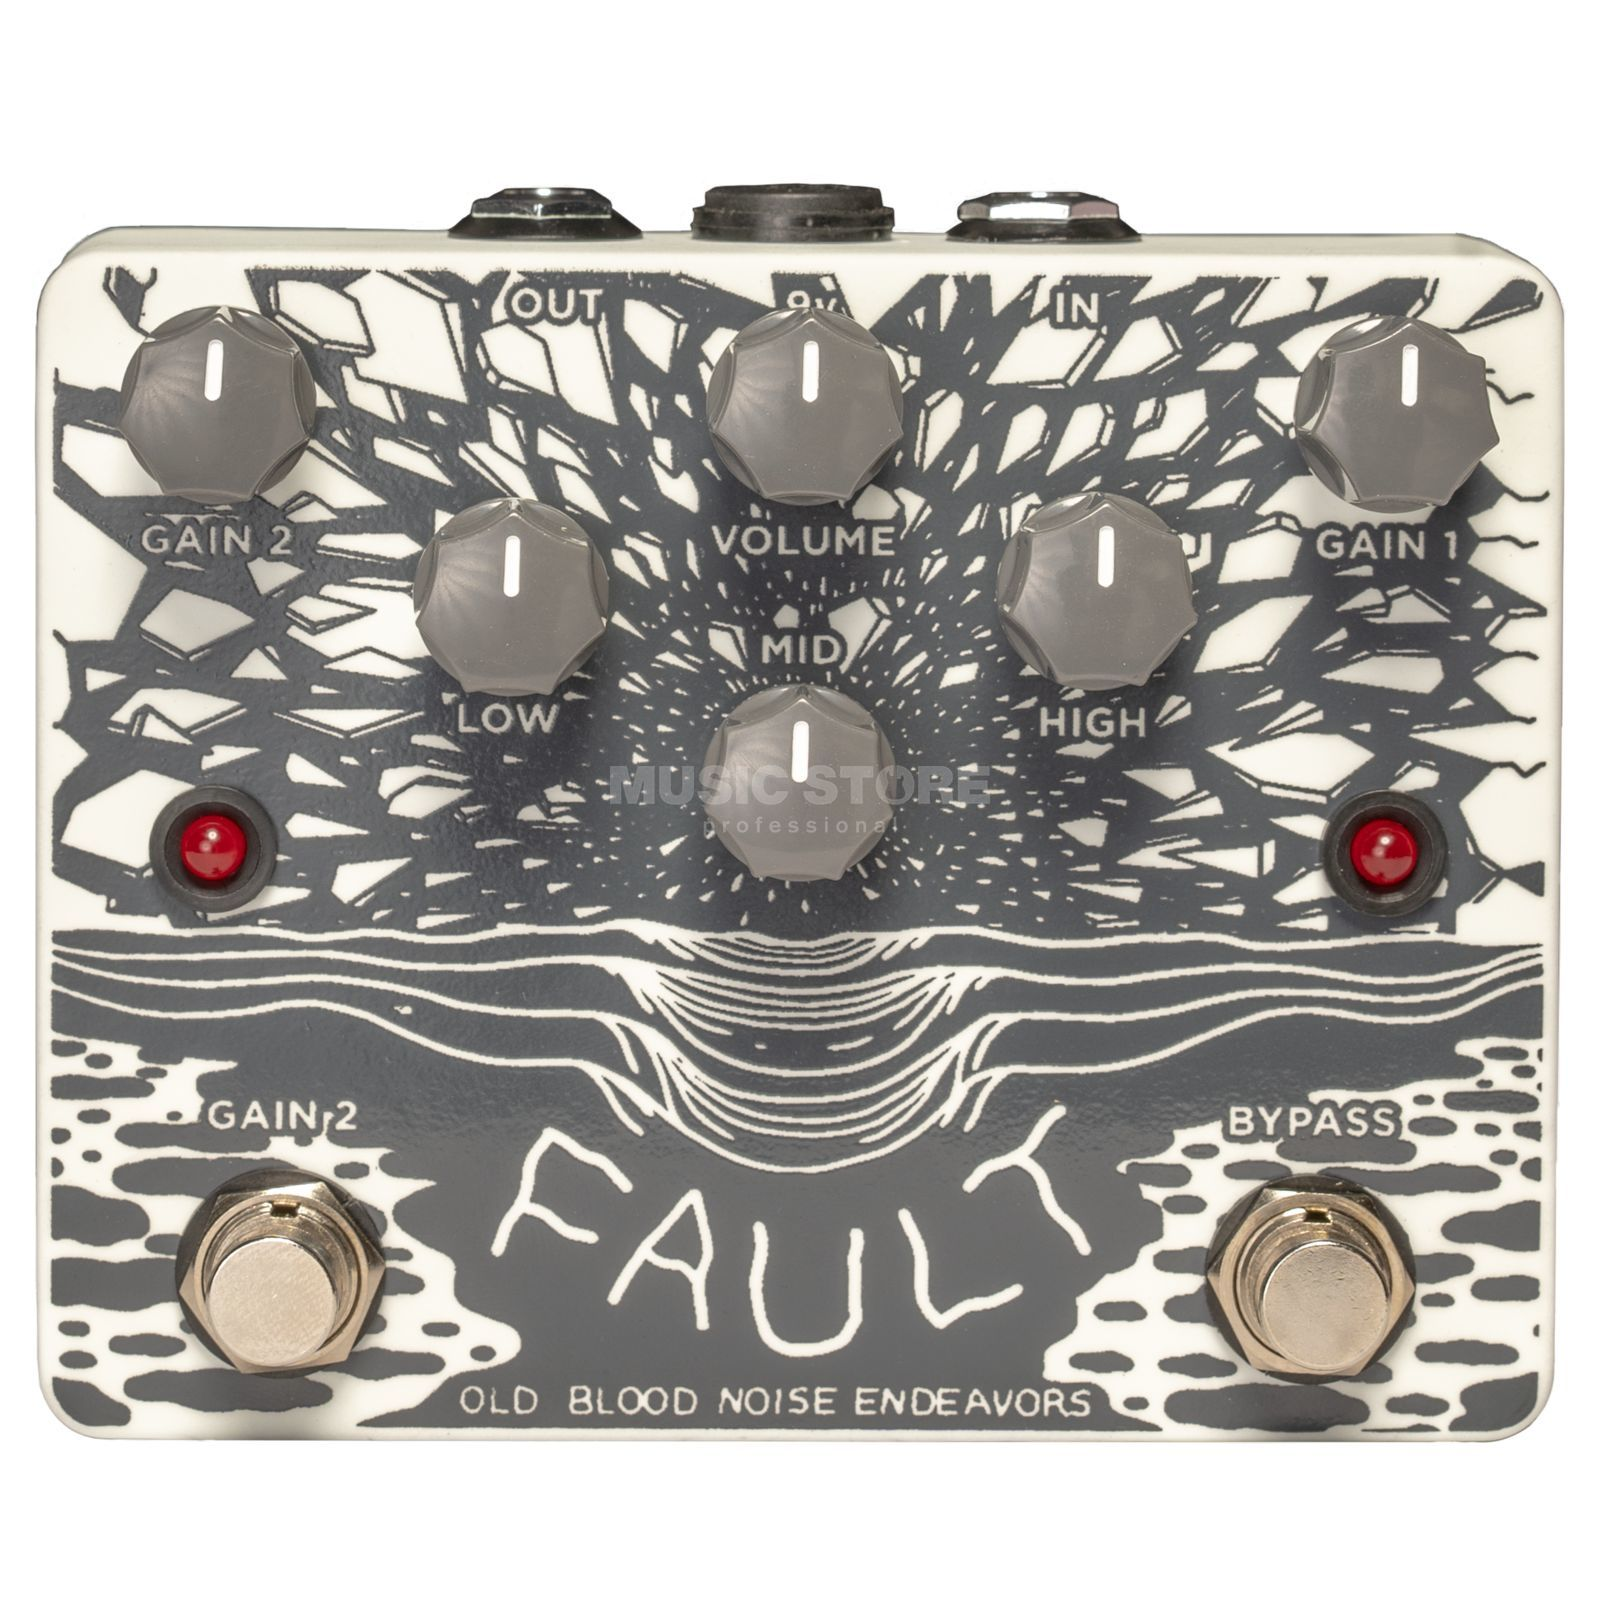 Old Blood Noise Fault Product Image